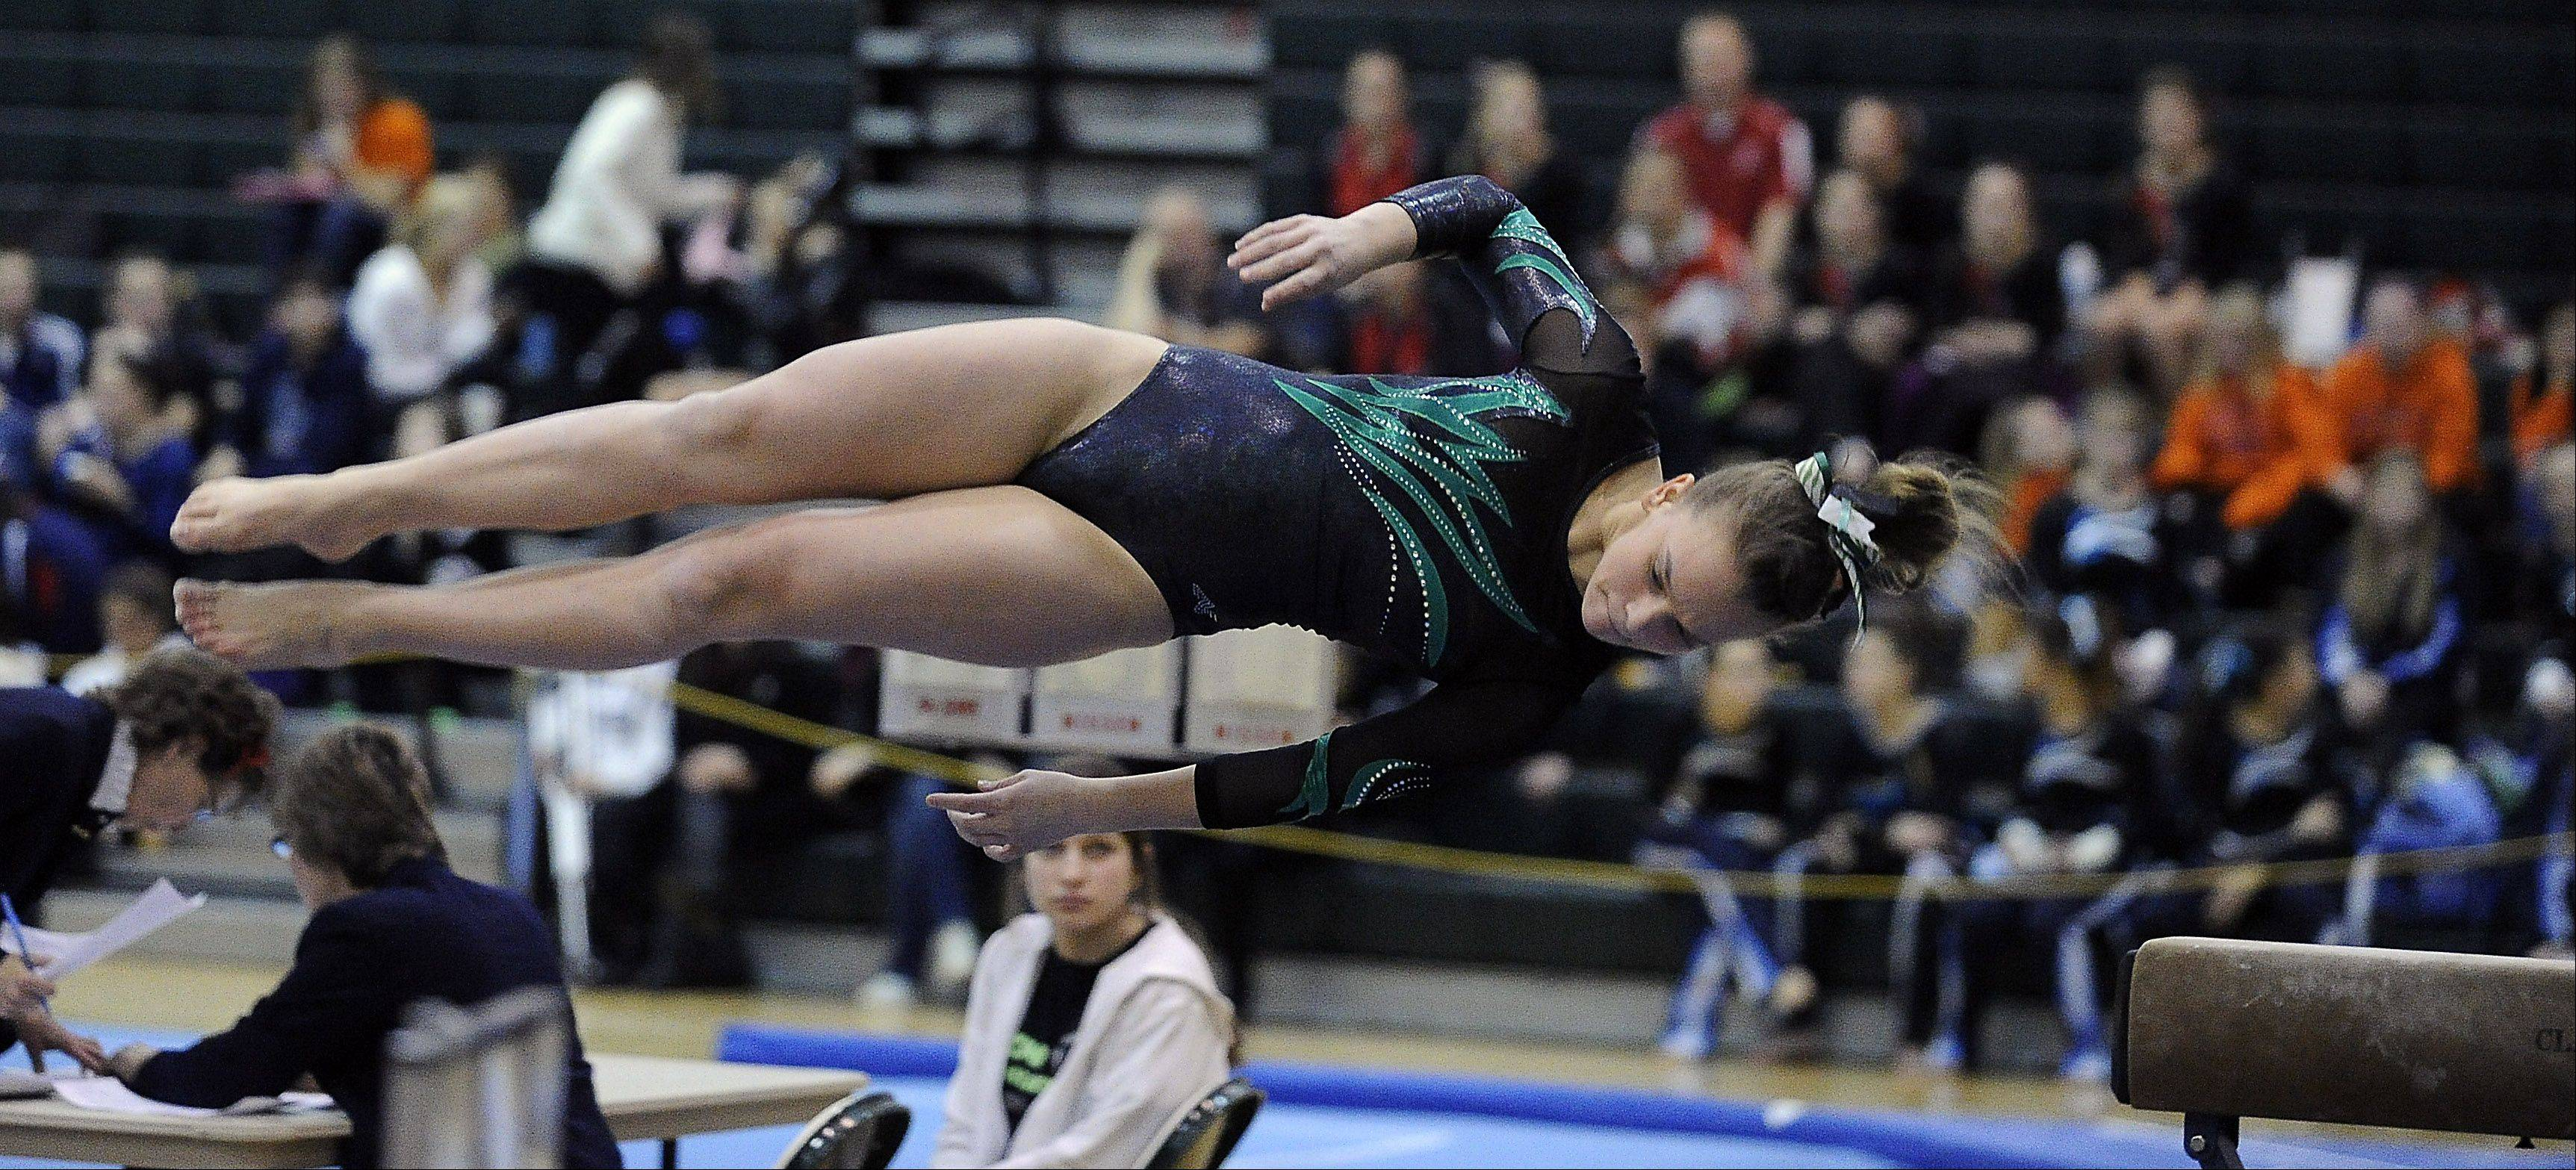 Mark Welsh/mwelsh@dailyherald.comFremd's Lisa Radochonski on the balance beam during sectional action Monday at Fremd.